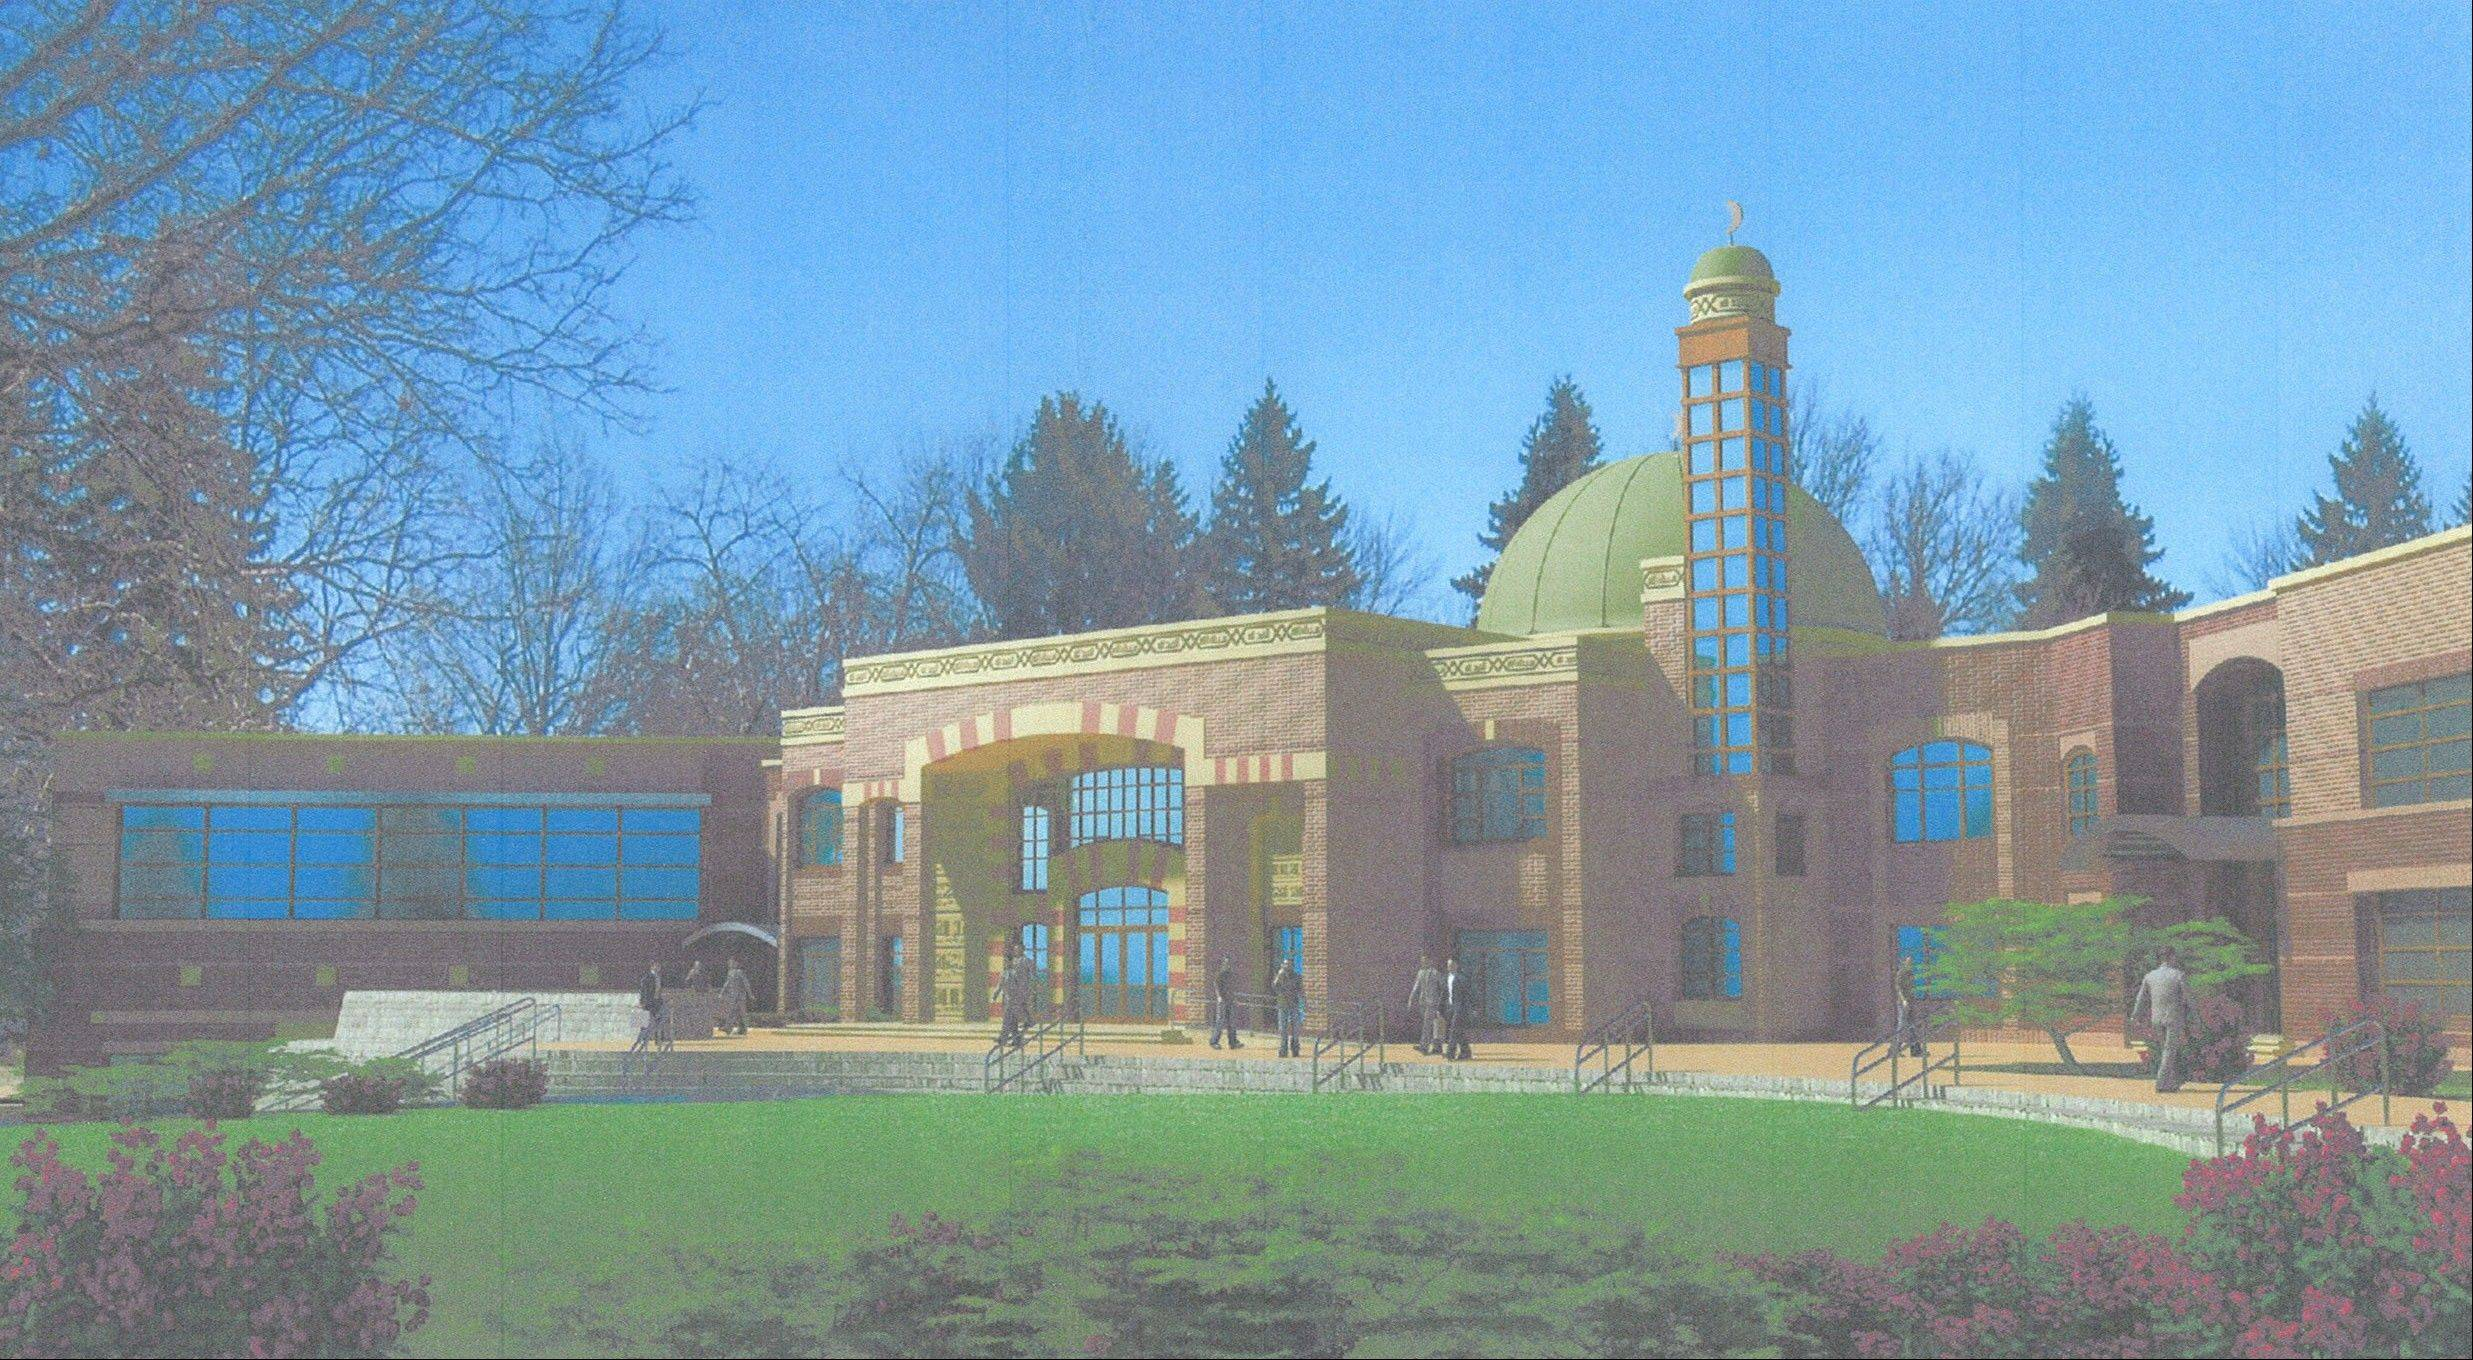 DuPage rejects height waiver for mosque